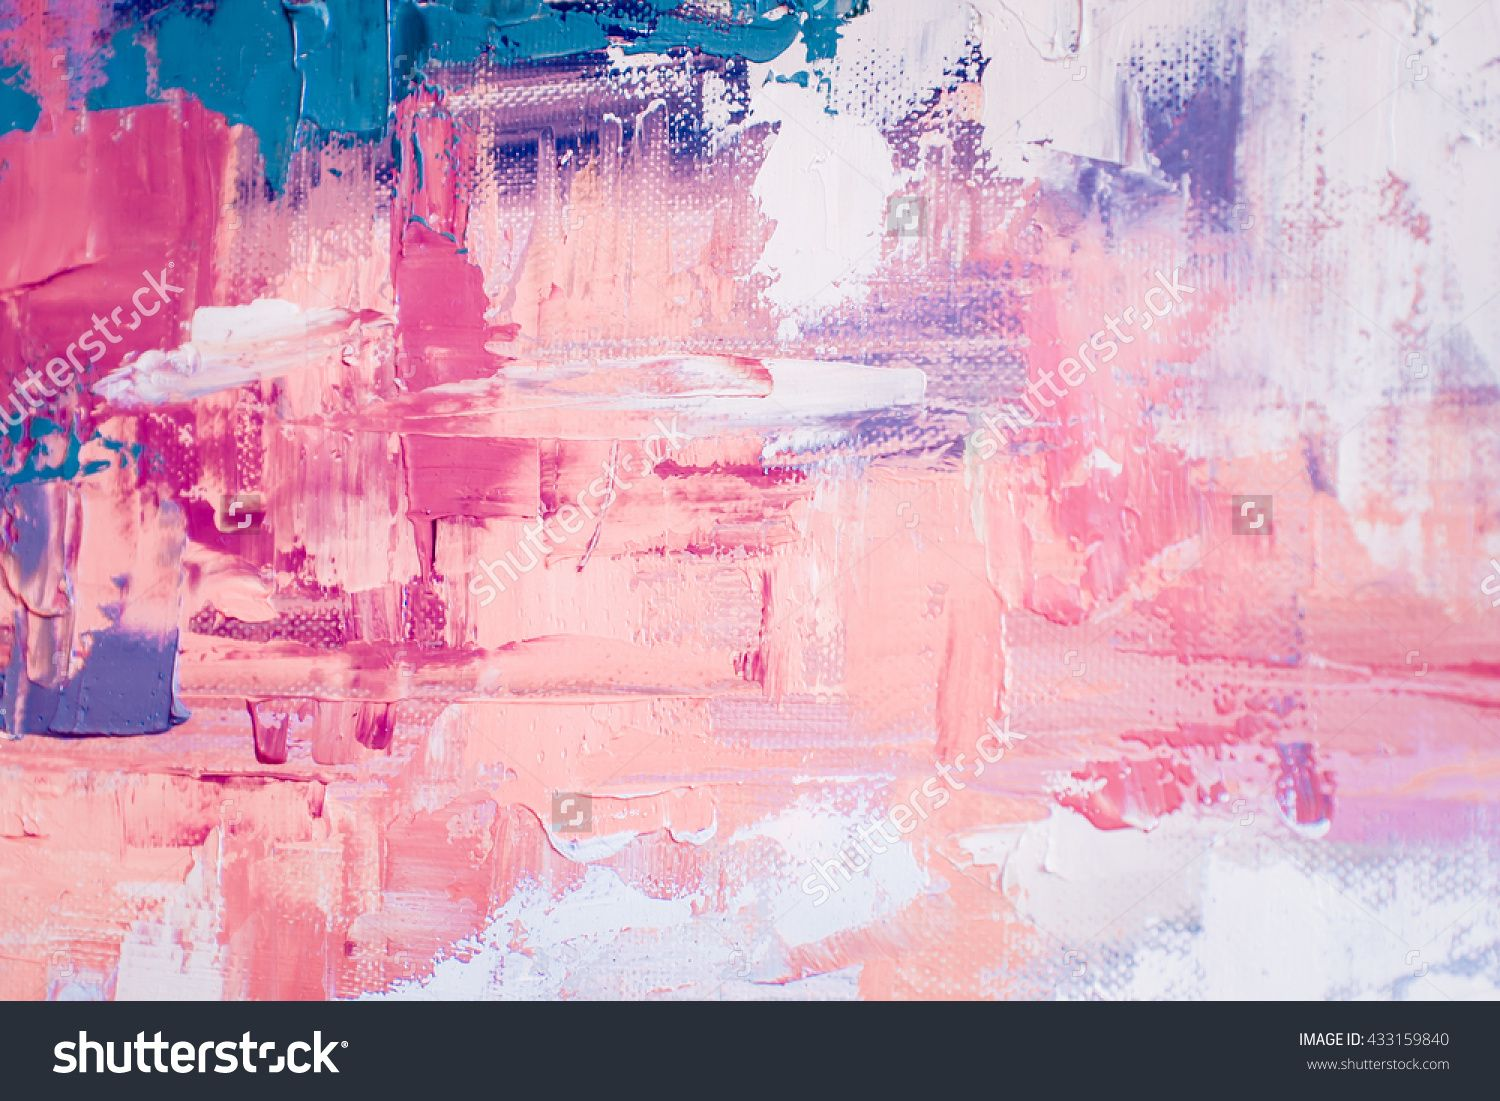 hand drawn oil painting abstract art background oil painting on